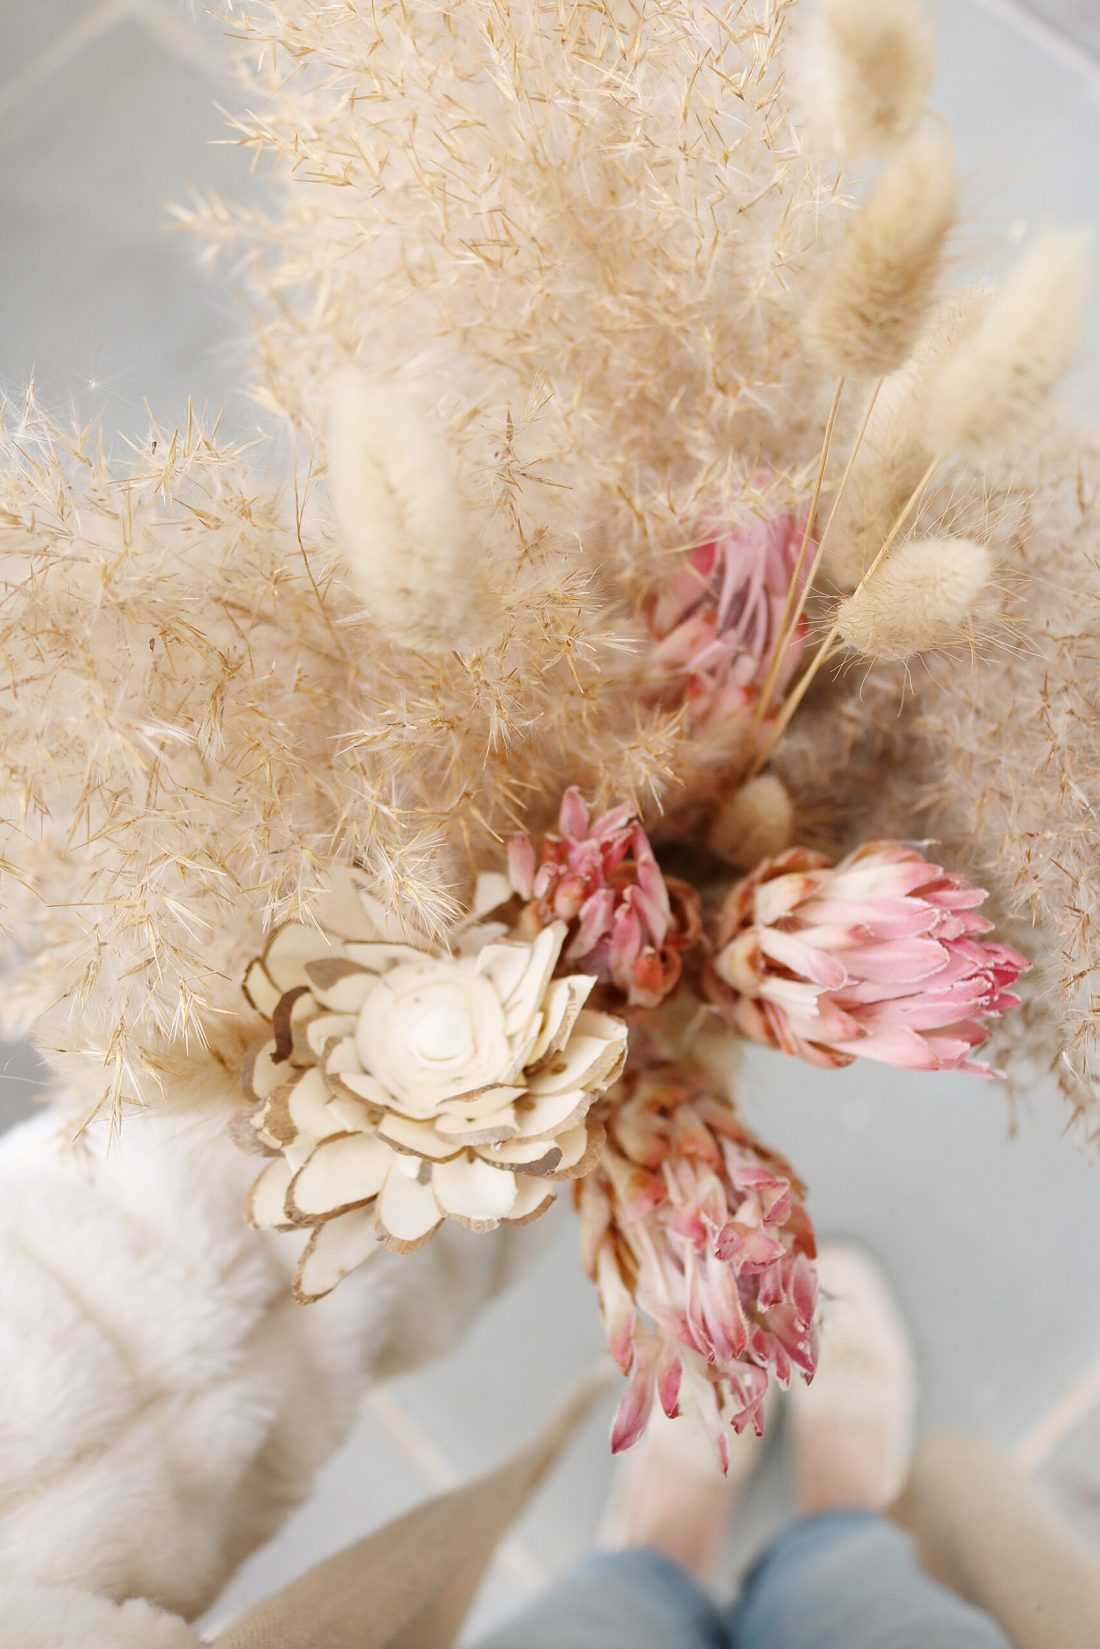 Where to find flowers for dried flower arrangements and the best flowers to choose.  Pampas grass flower arrangements || Darling Darleen Top Lifestyle Connecticut Blogger